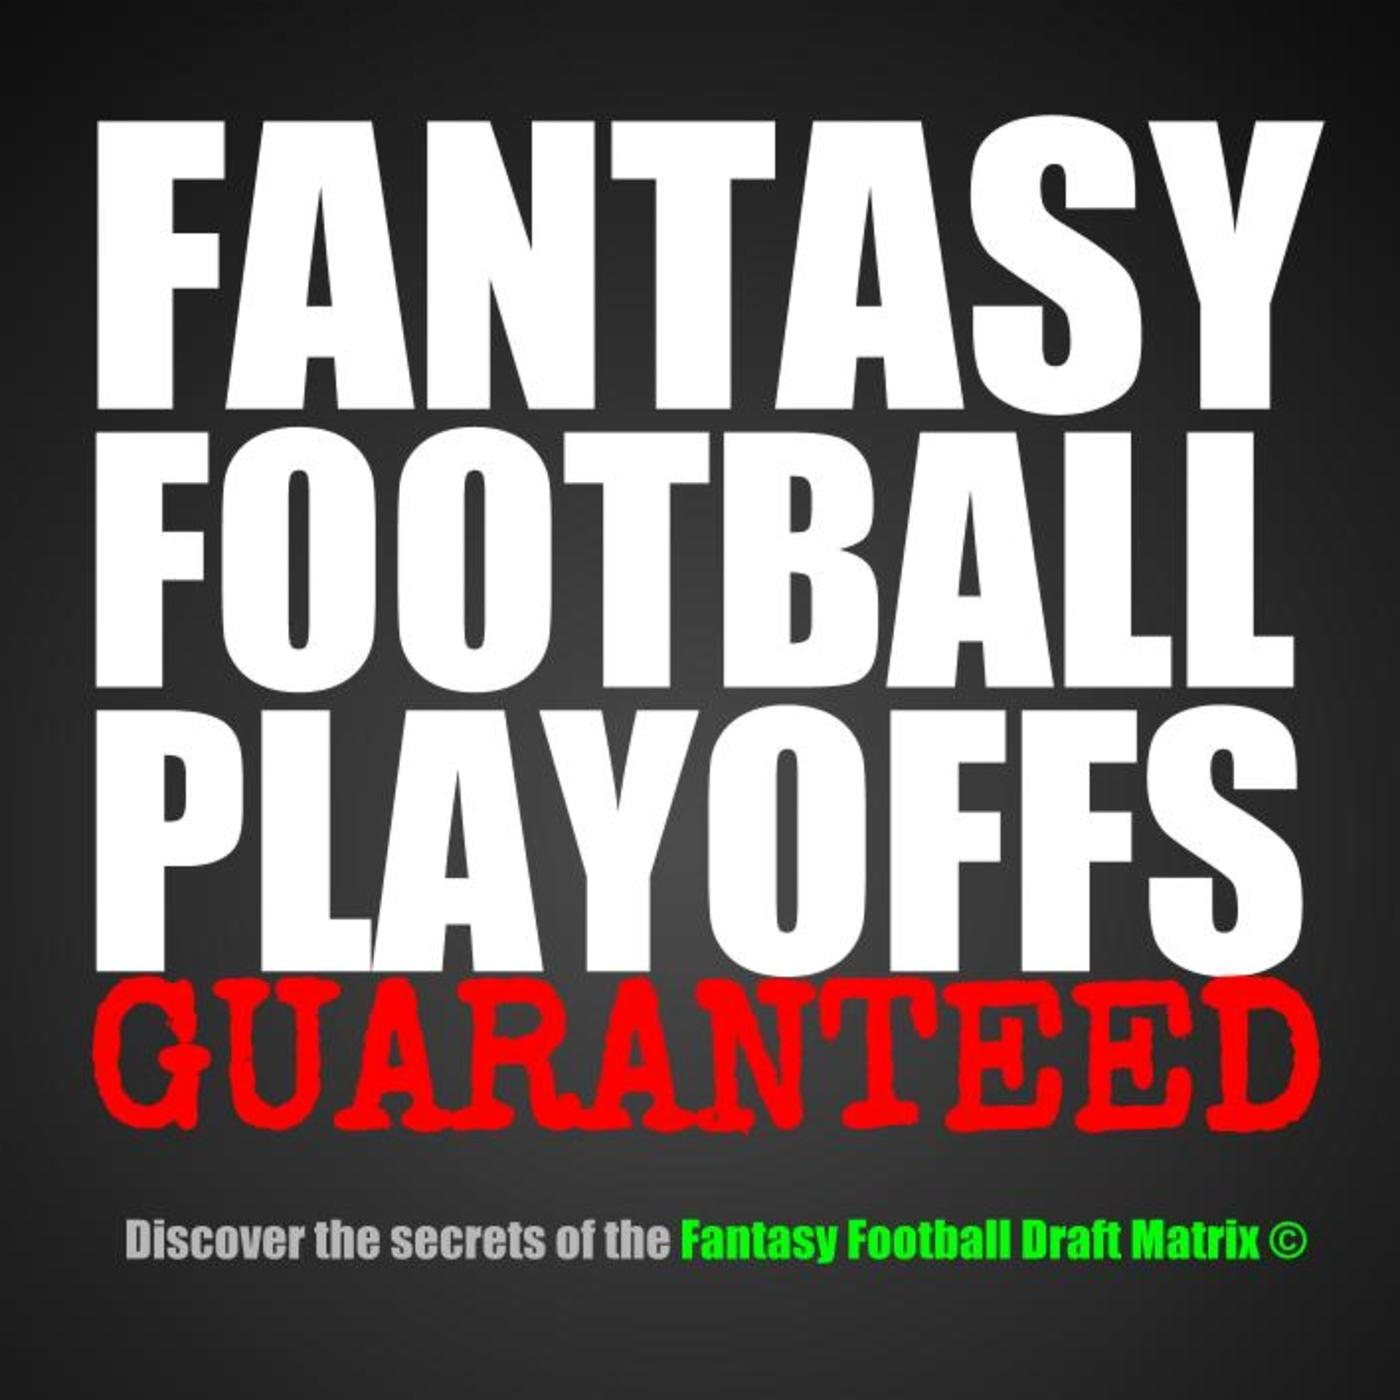 Fantasy Football Playoffs Guaranteed